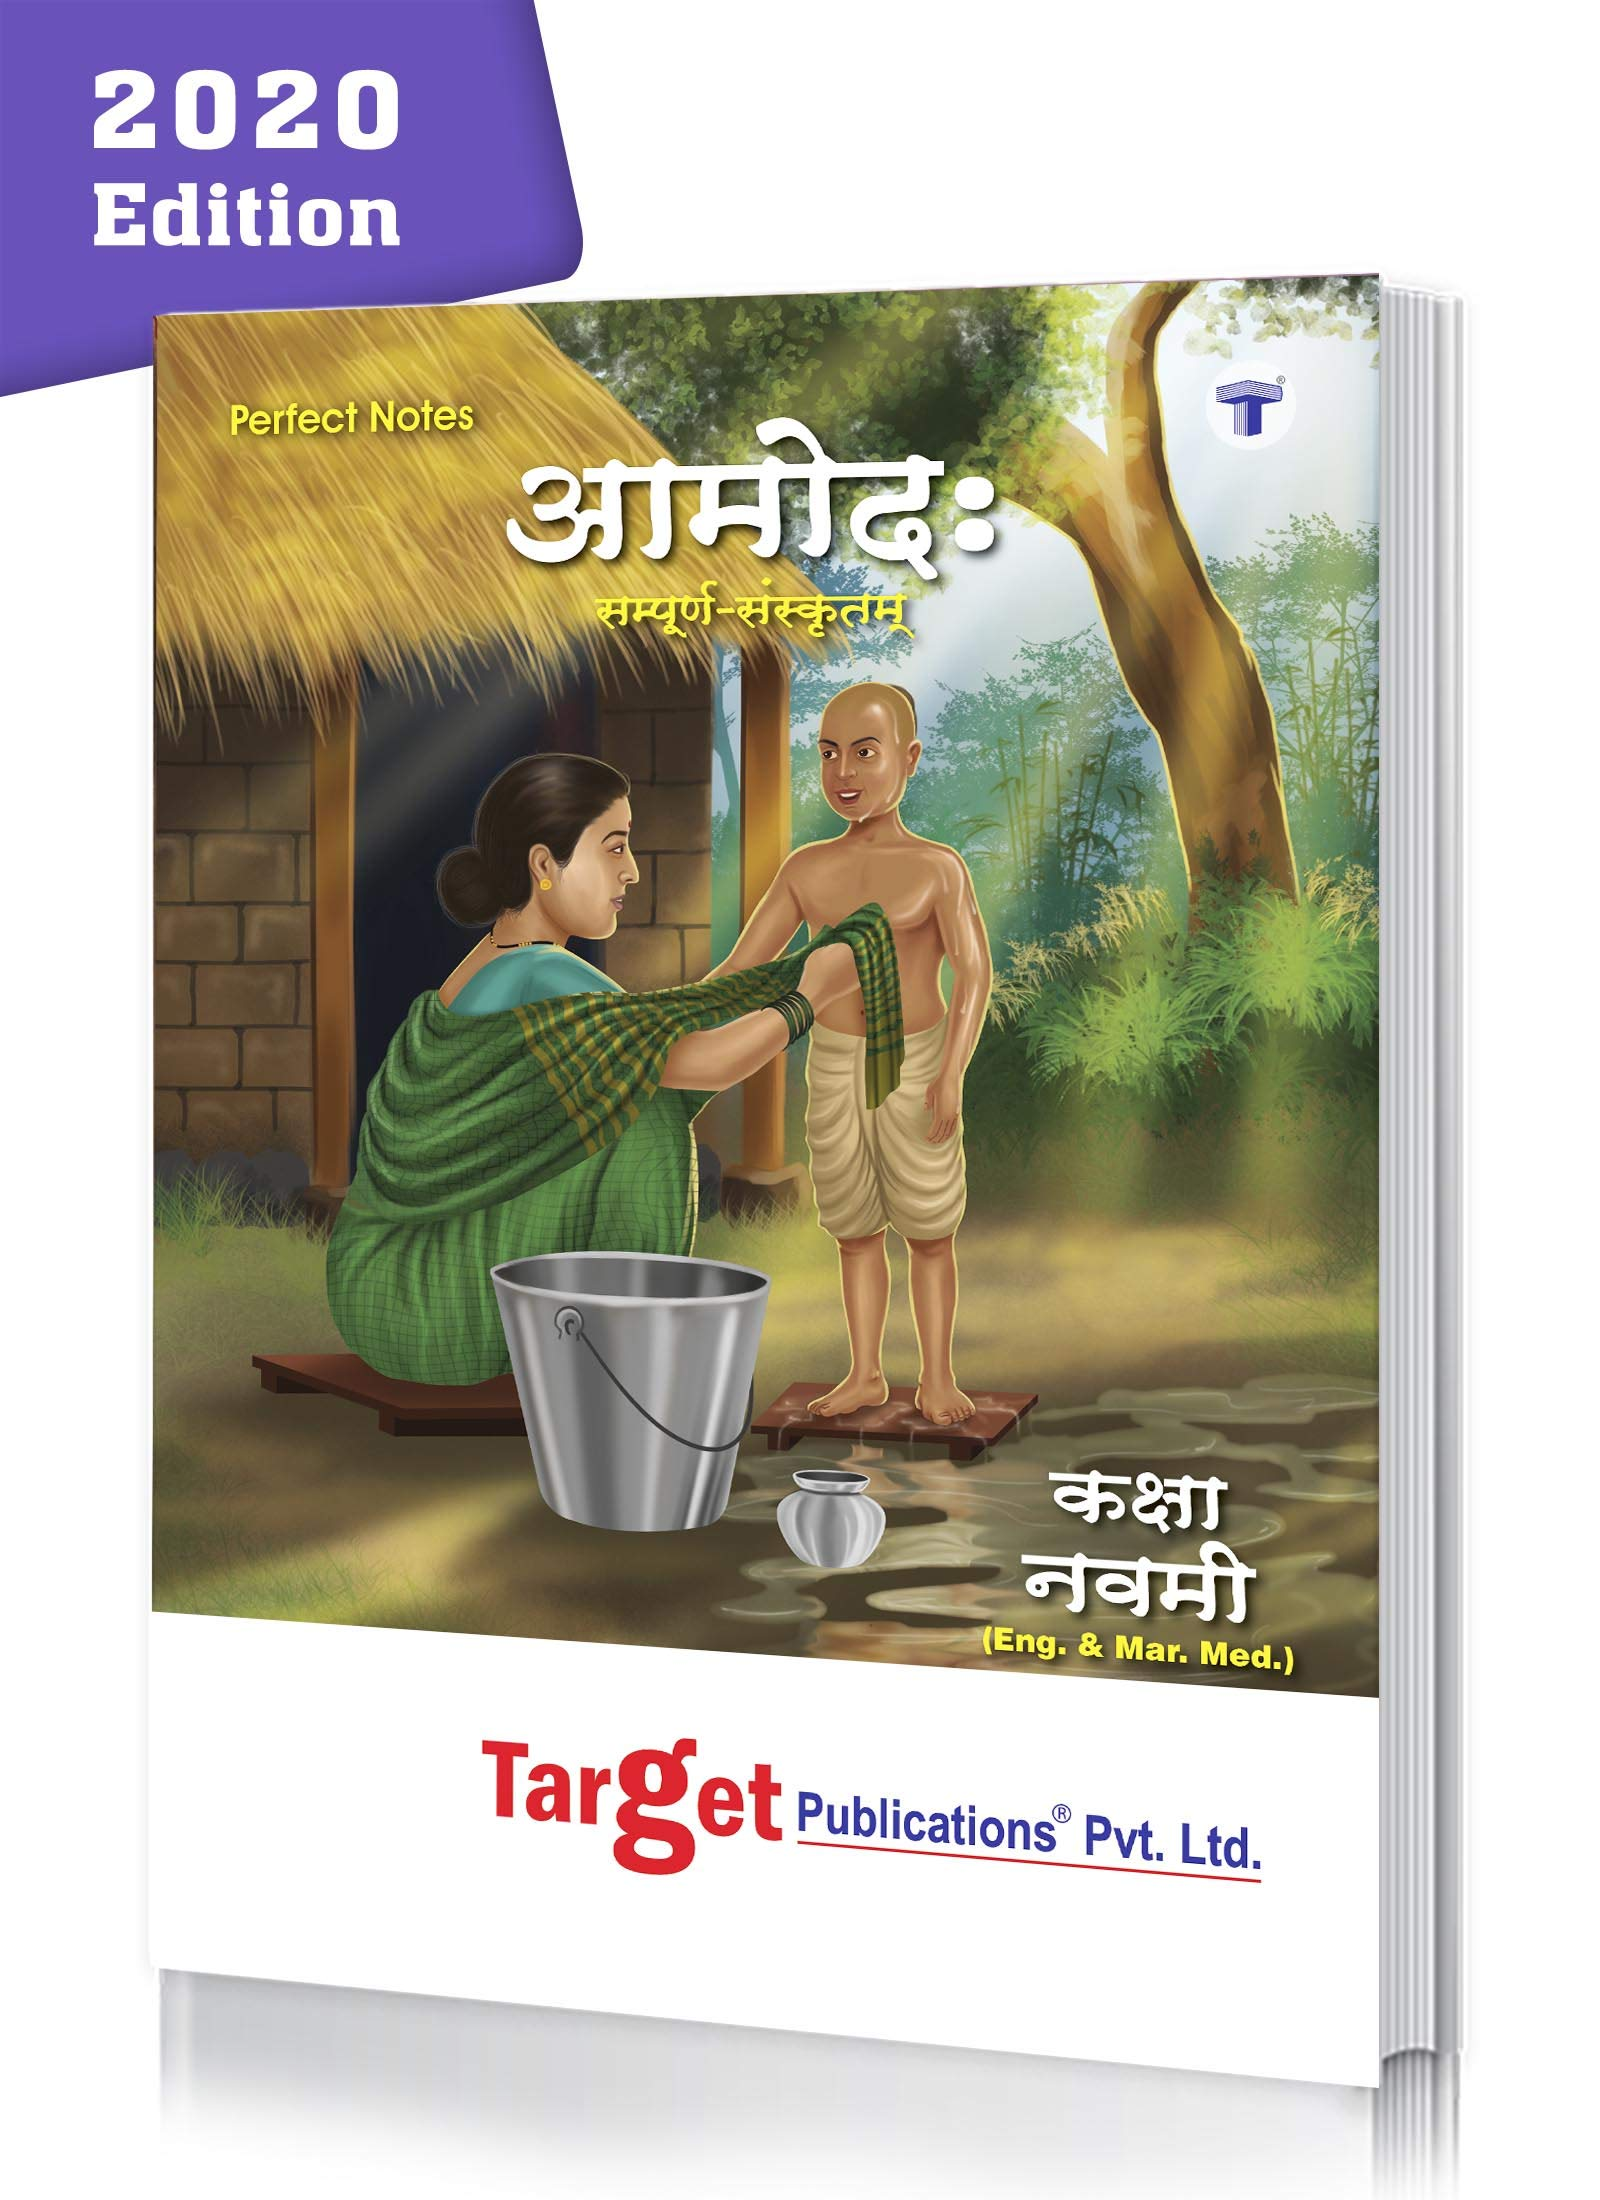 Std 9 Perfect Notes Sanskrit Aamod Entire 100 Marks Book All Mediums Maharashtra State Board Includes Easy Explanation Textual Questions Grammar And Writing Skills Based On Std 9th